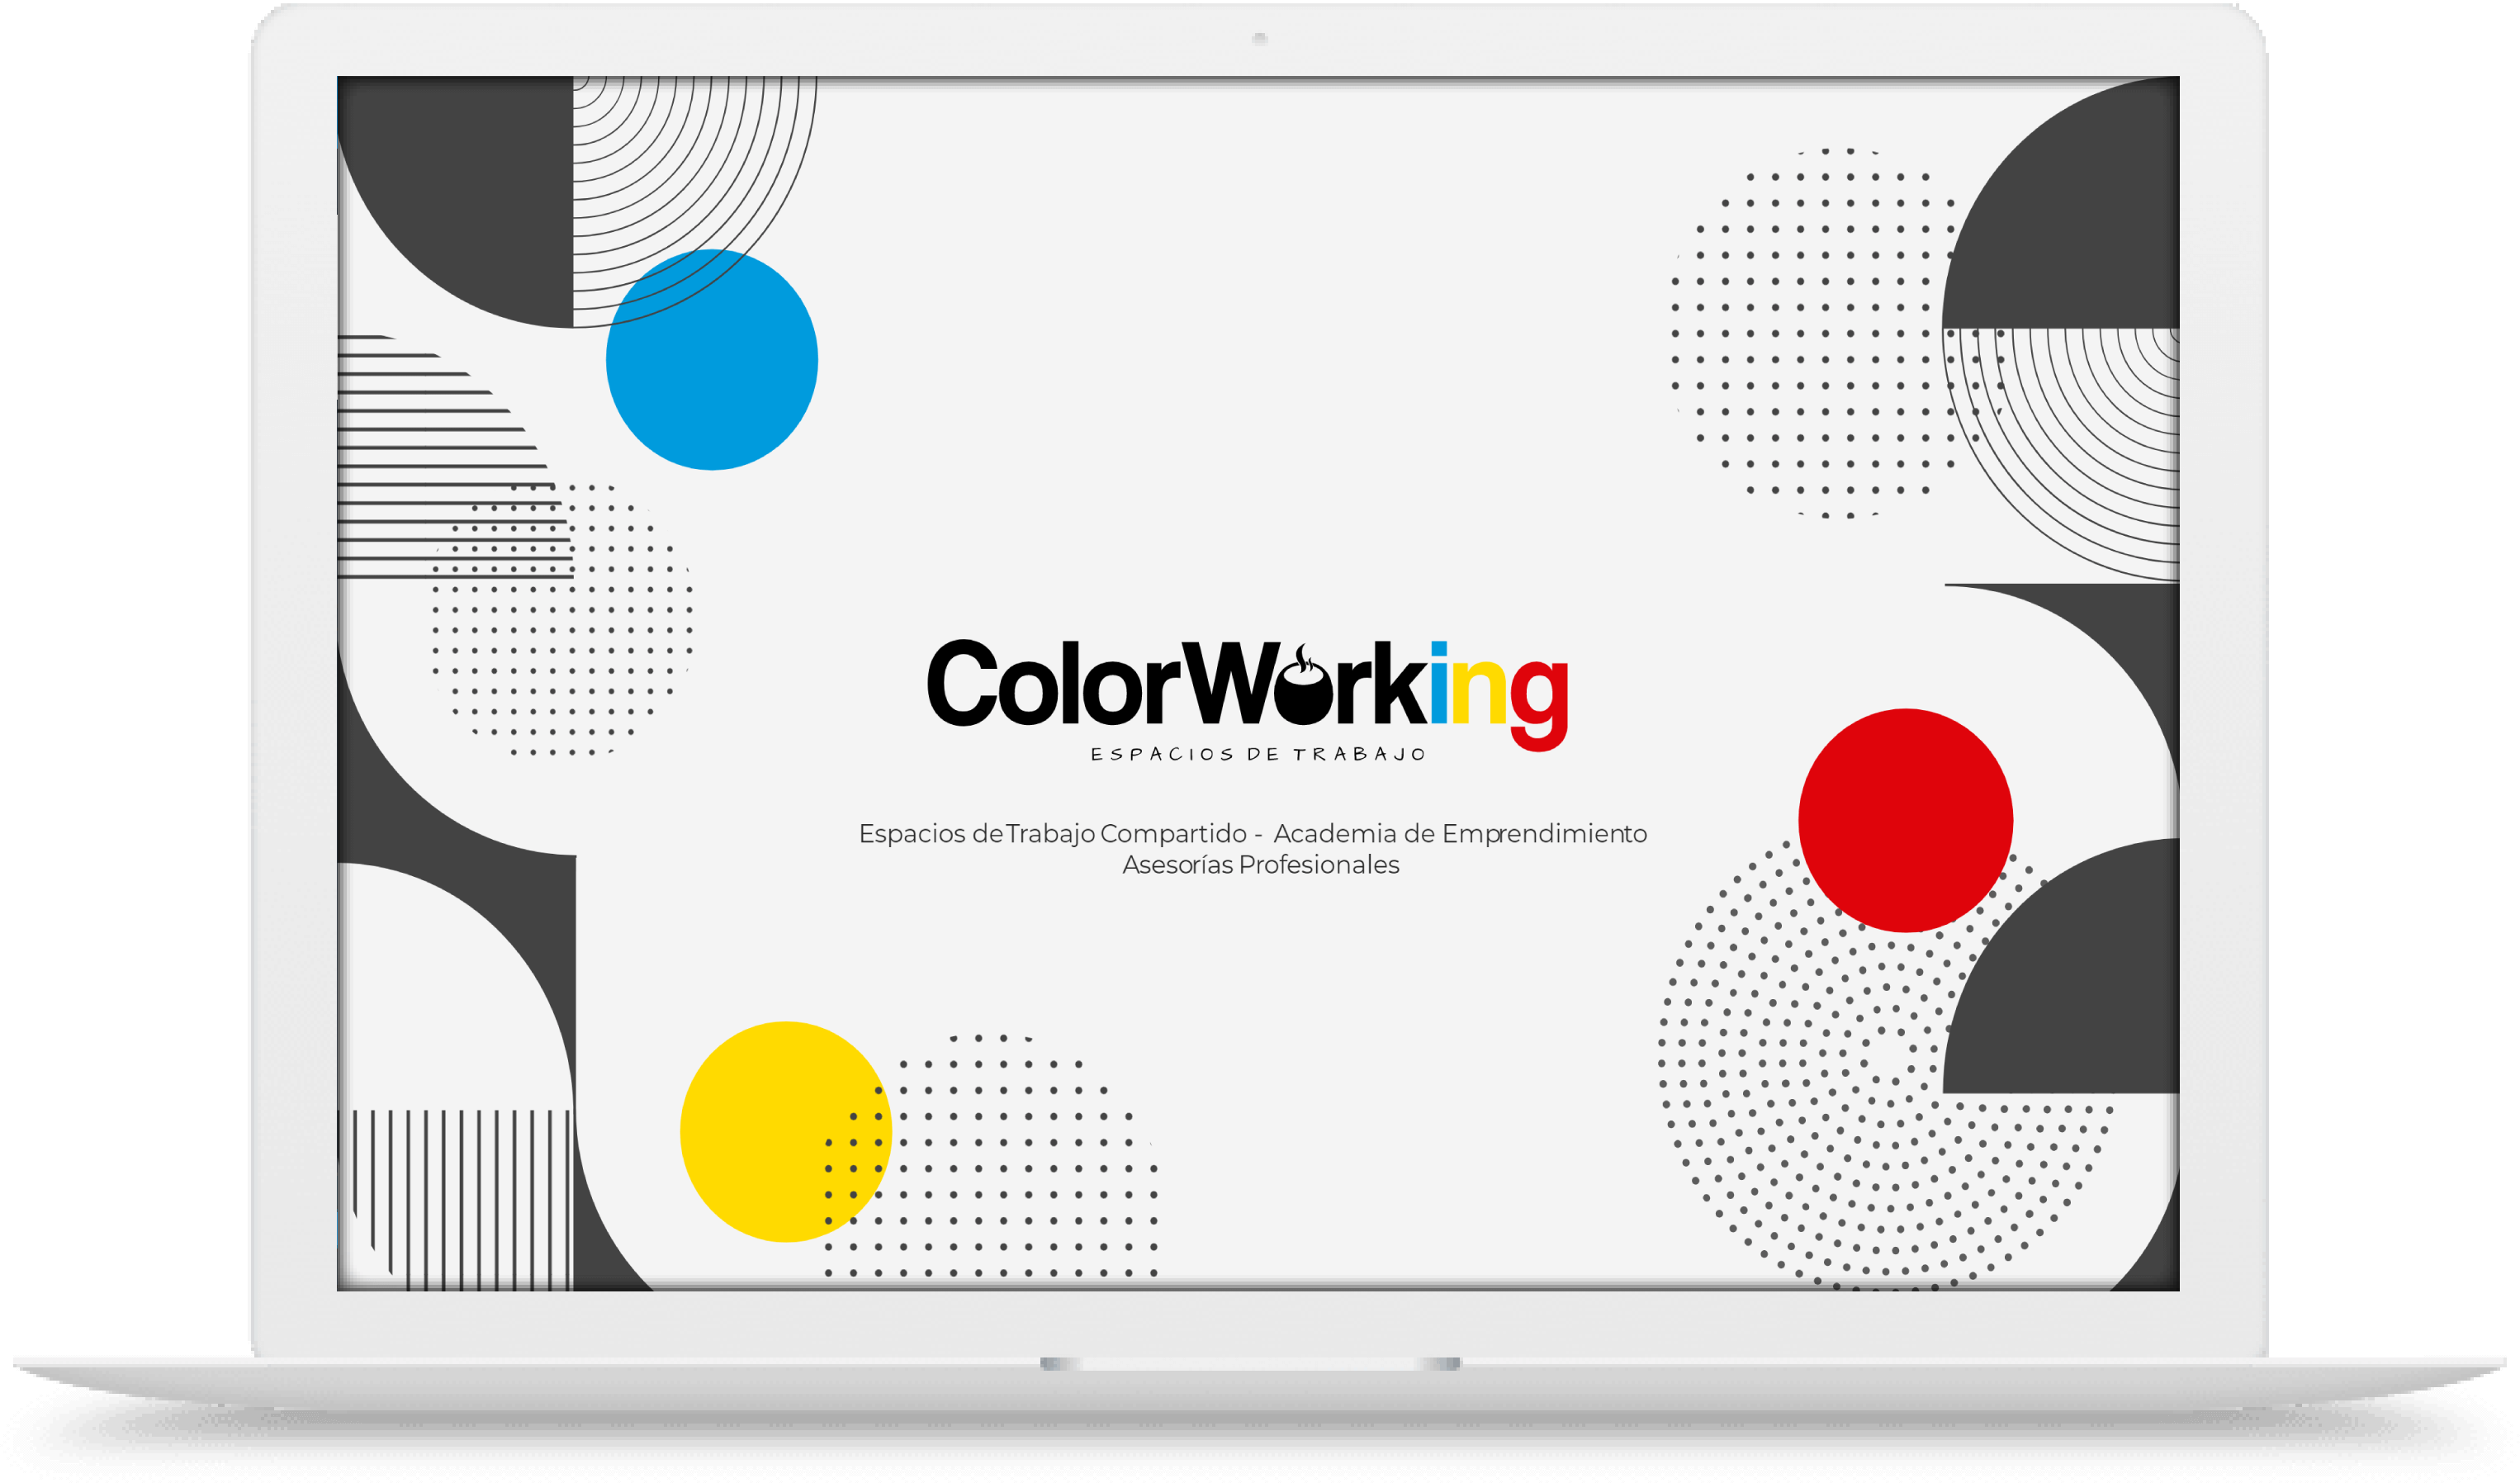 colorworking